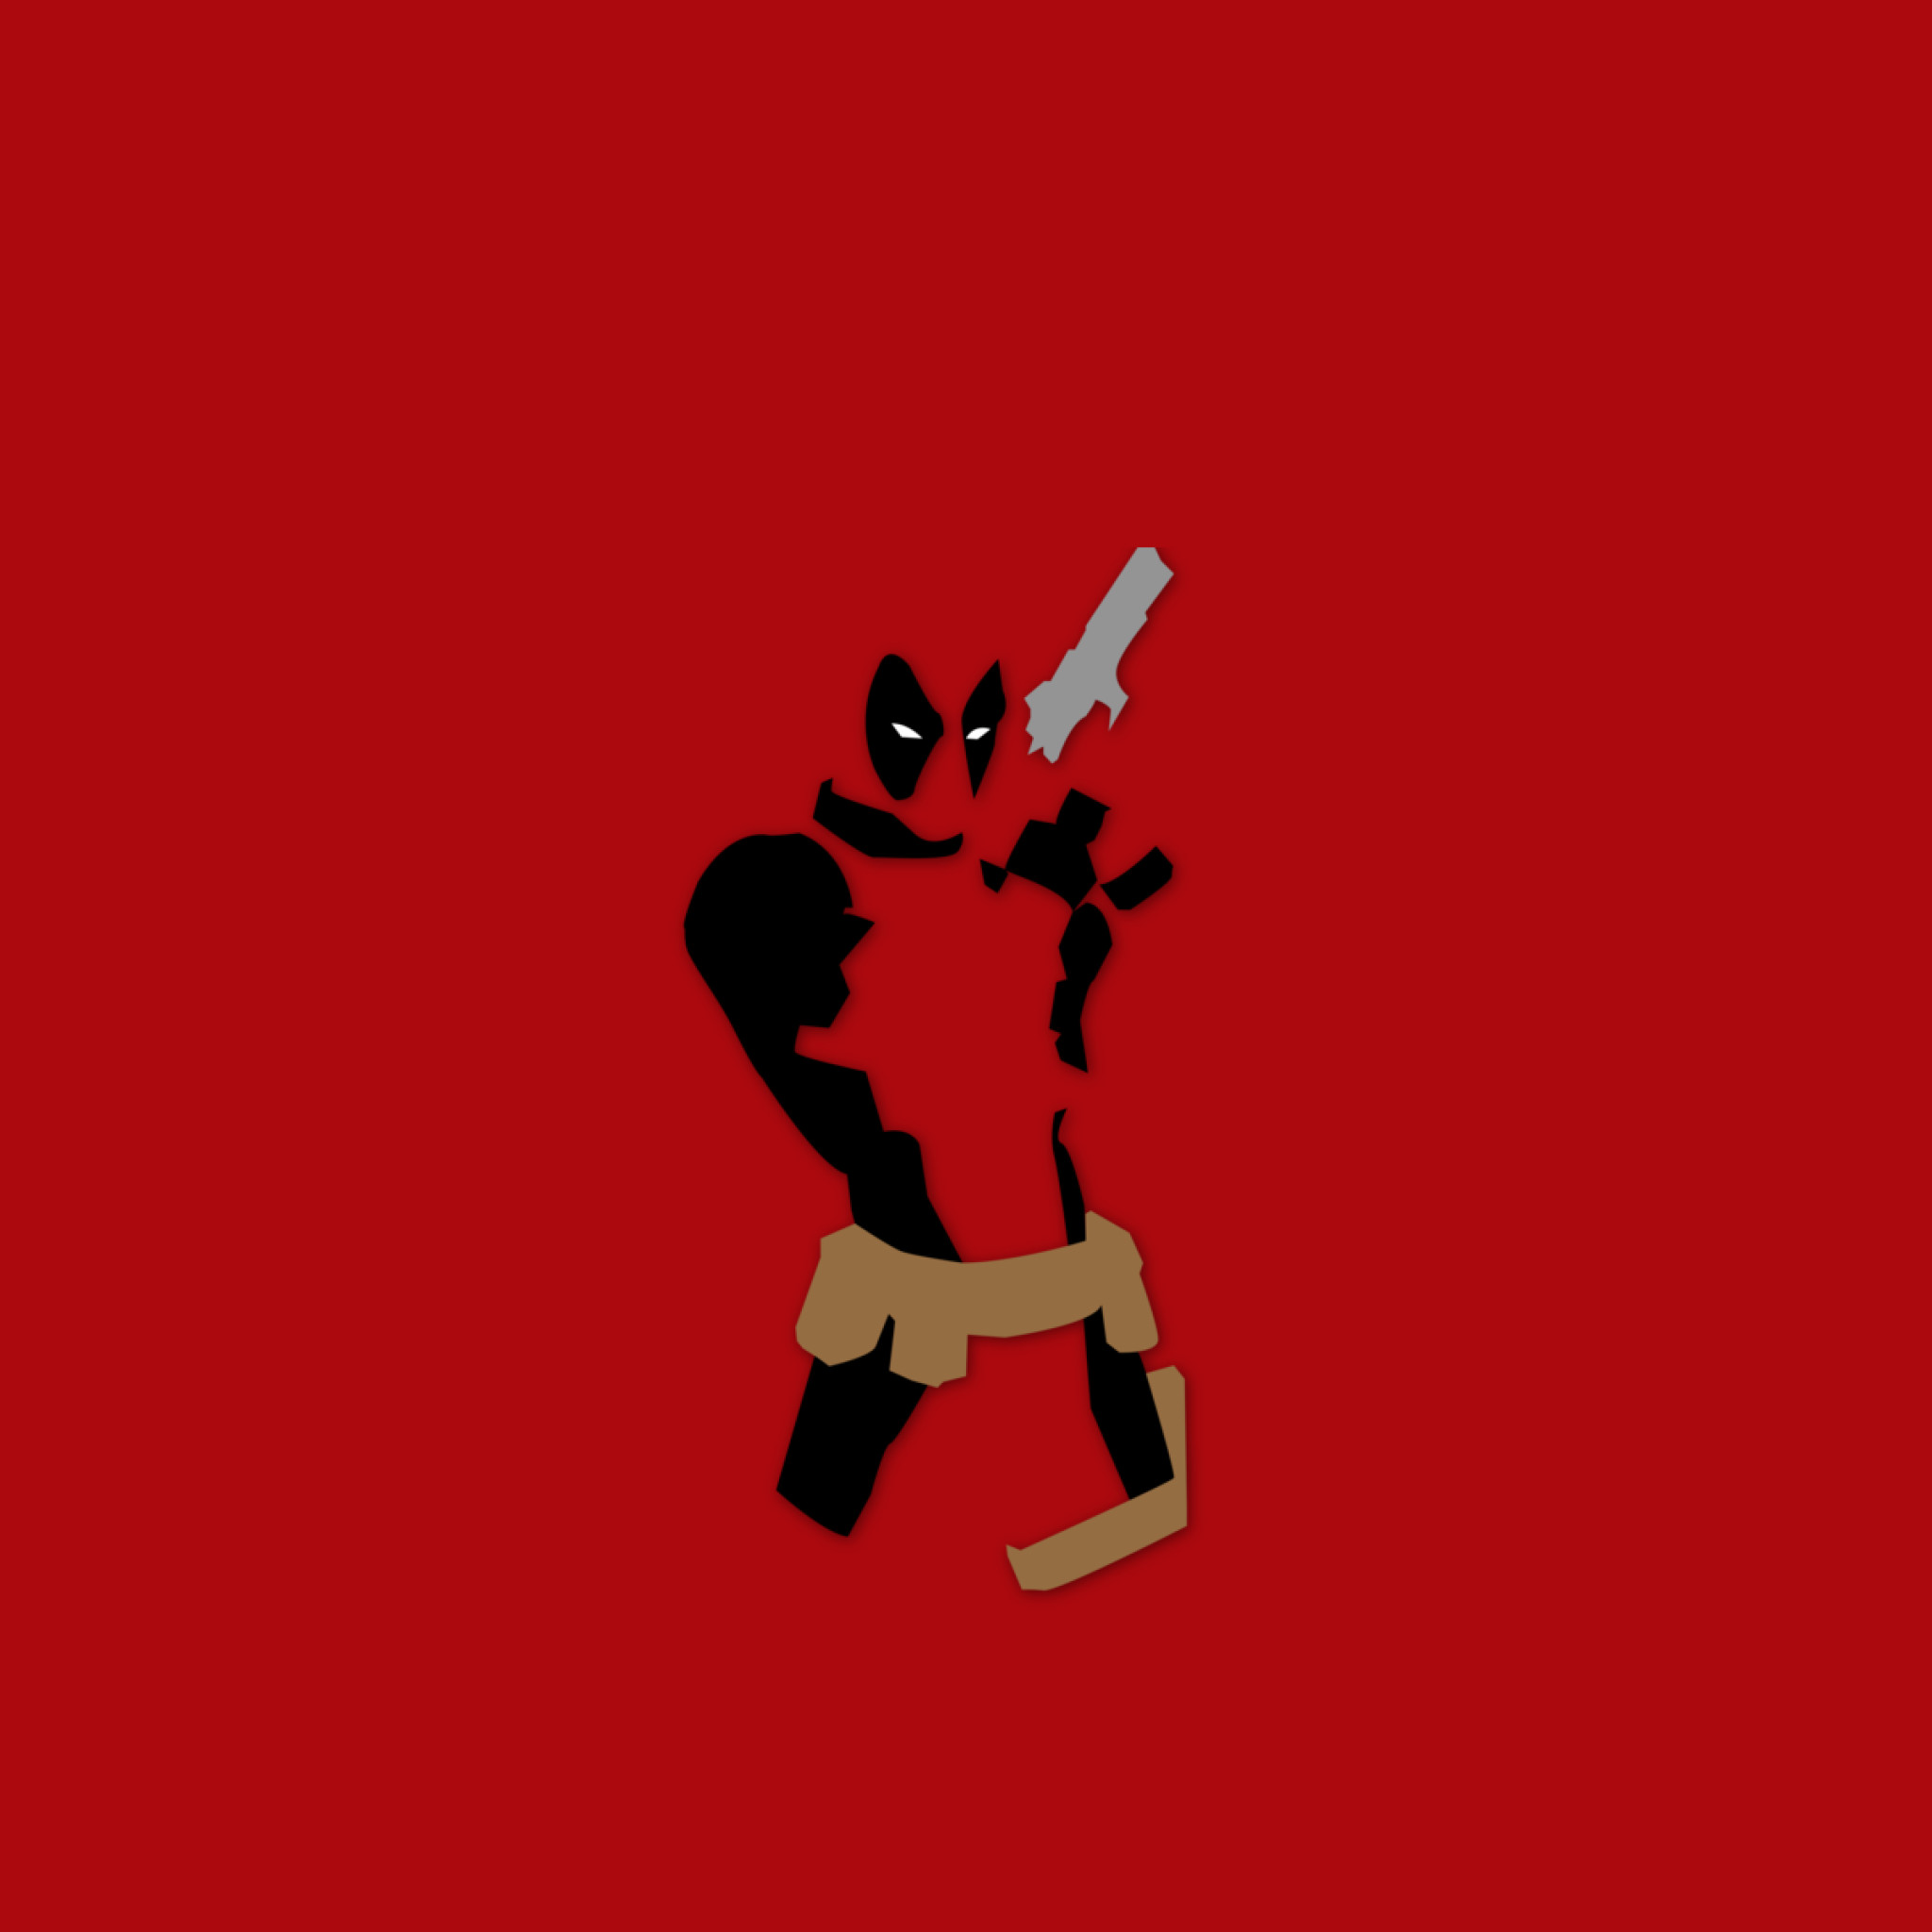 Red Deadpool – Tap to see more of the The Merc with a Mouth: Deadpool  Wallpapers as well as many more other awesome movies & games wallpaper!